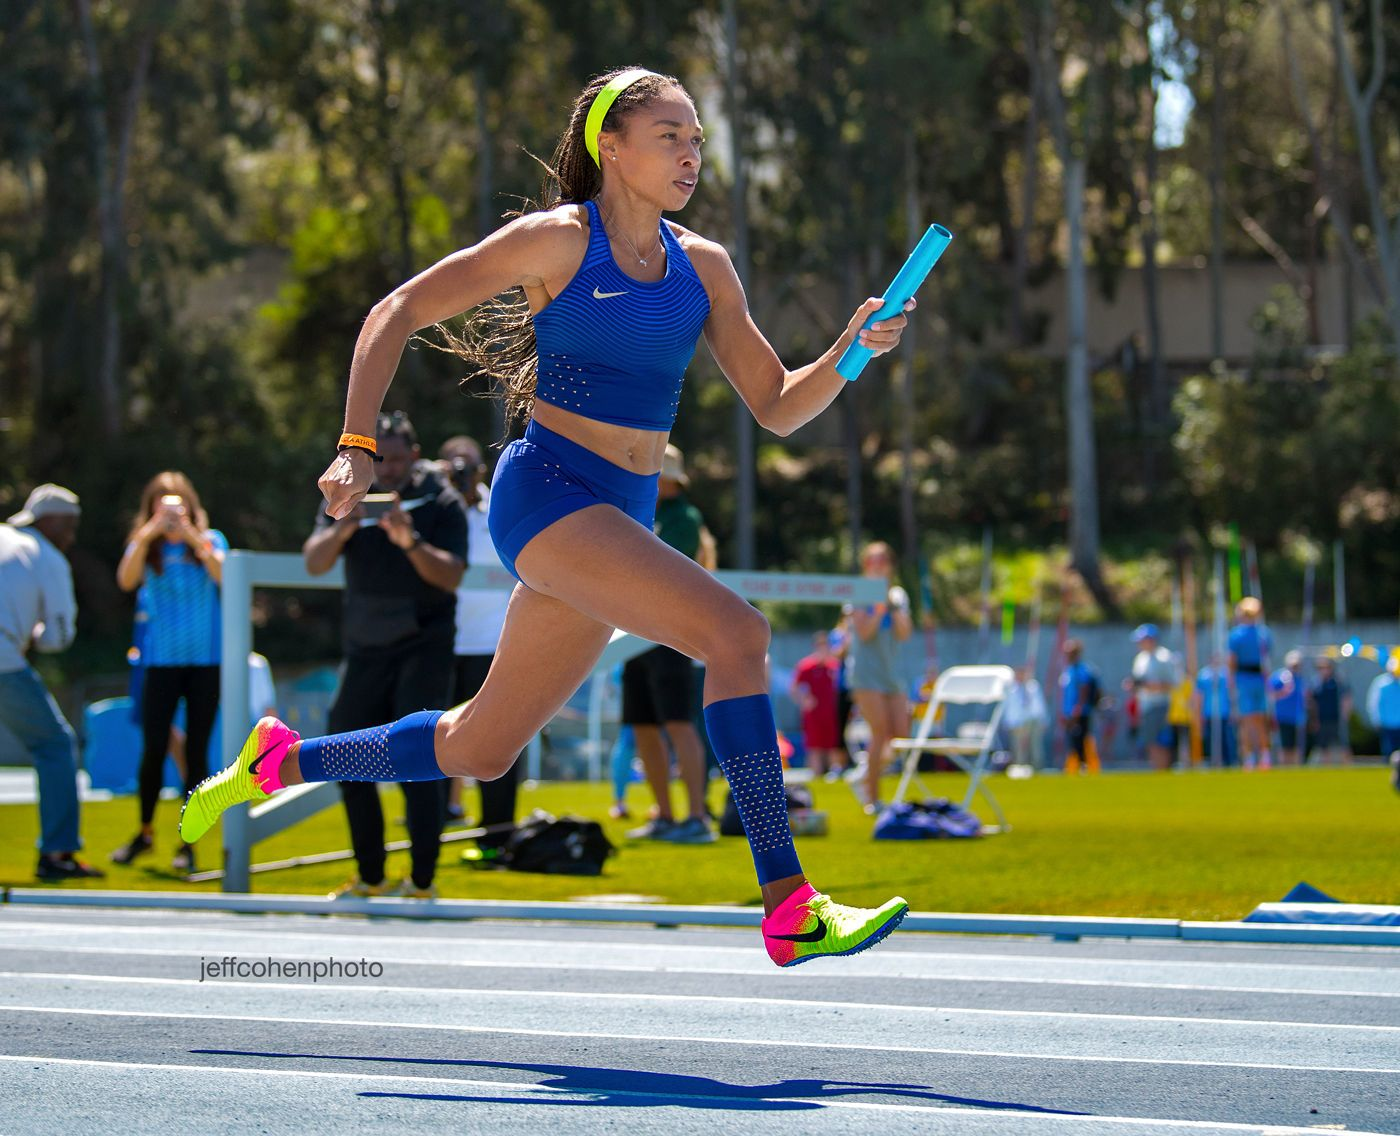 1felix_allyson_4x100_4_2017_jjk_meet___jeff_cohen_photo__669_web.jpg